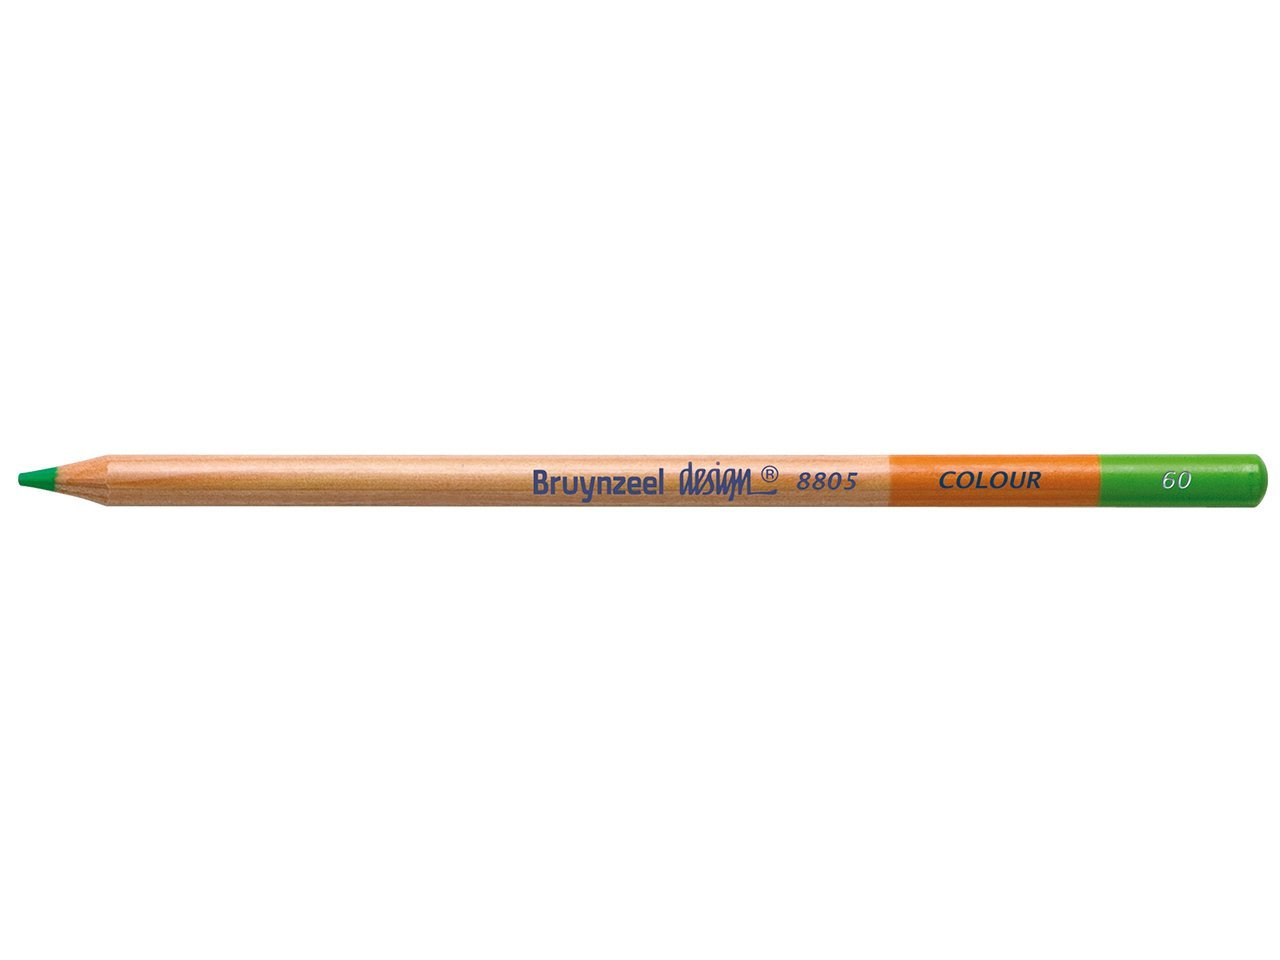 Bruynzeel Pencil - 60 Light Green